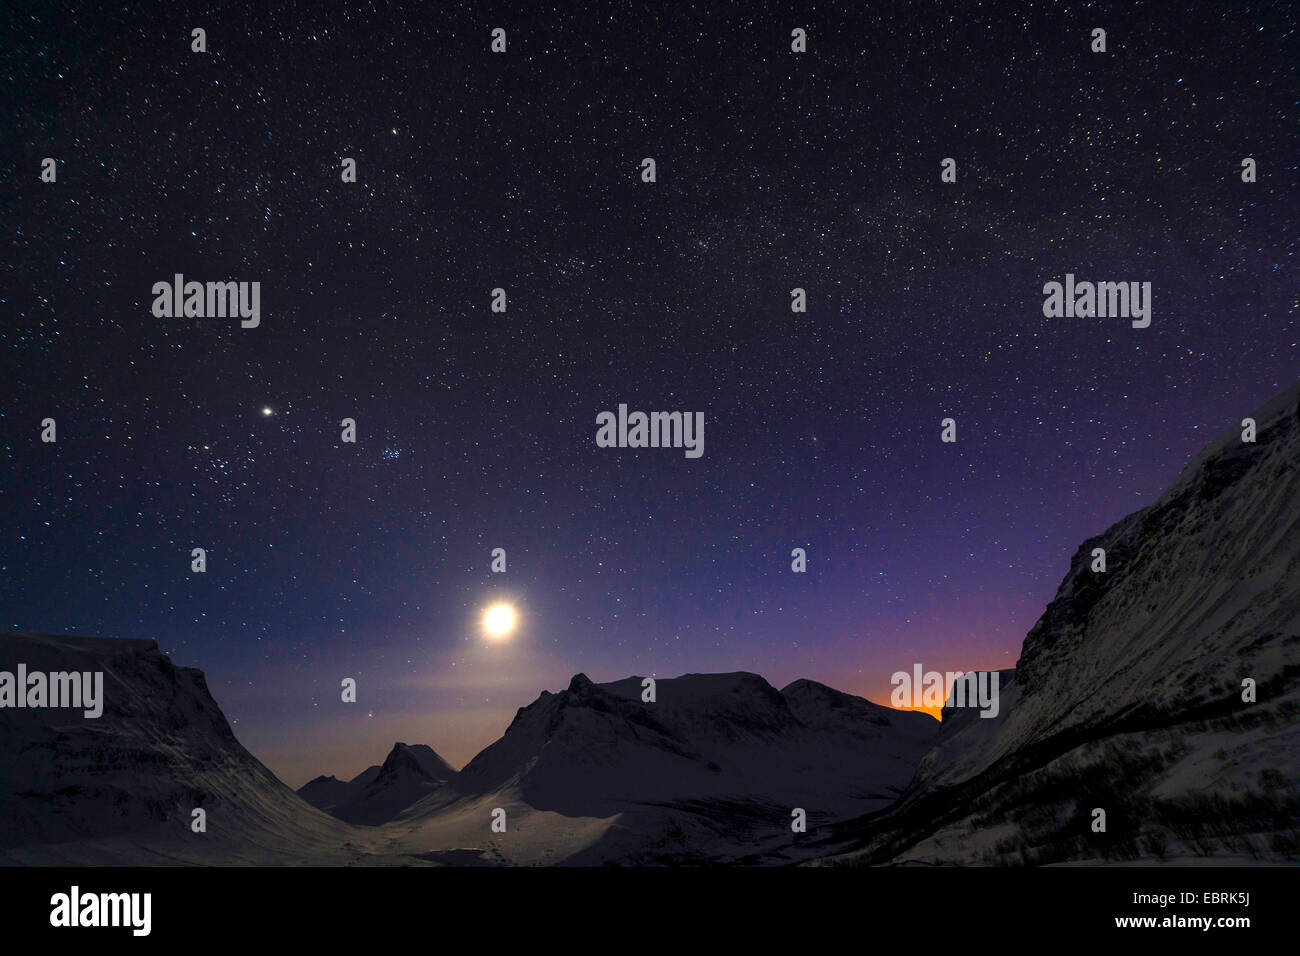 night with full moon in Vistasdalen, Sweden, Lapland, Kebnekaisefjaell, Vistasdalen - Stock Image